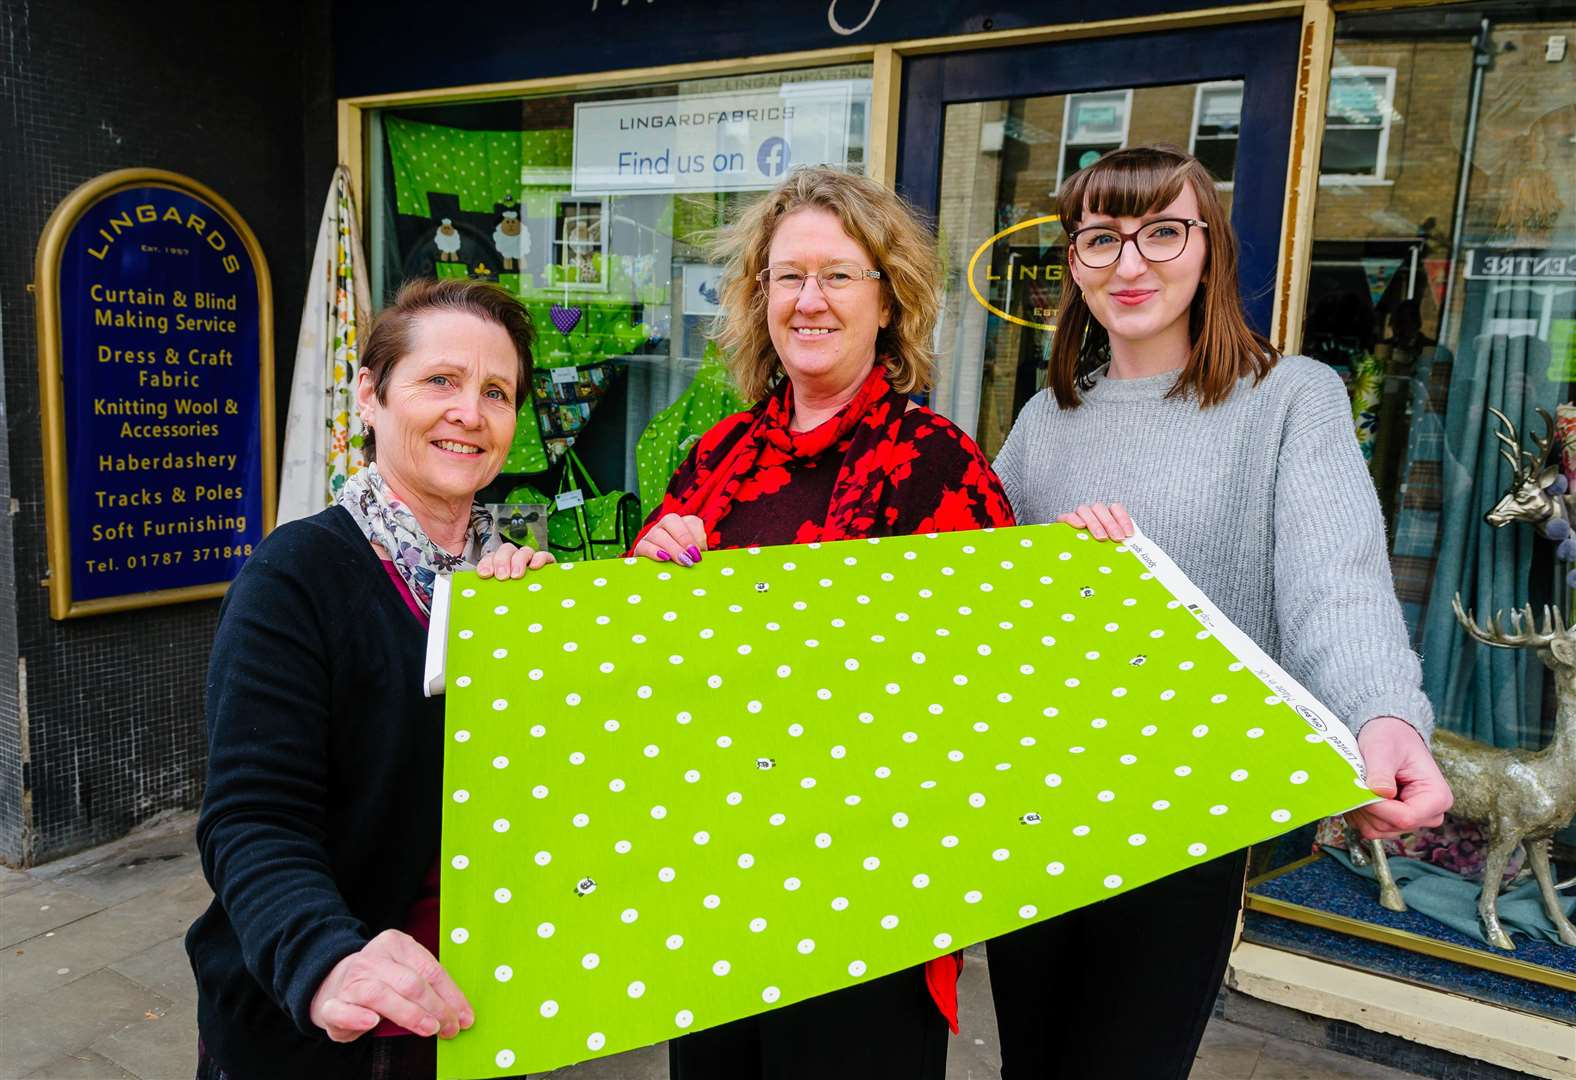 Lingard Fabrics in Sudbury brings out community's creativity with window display contest